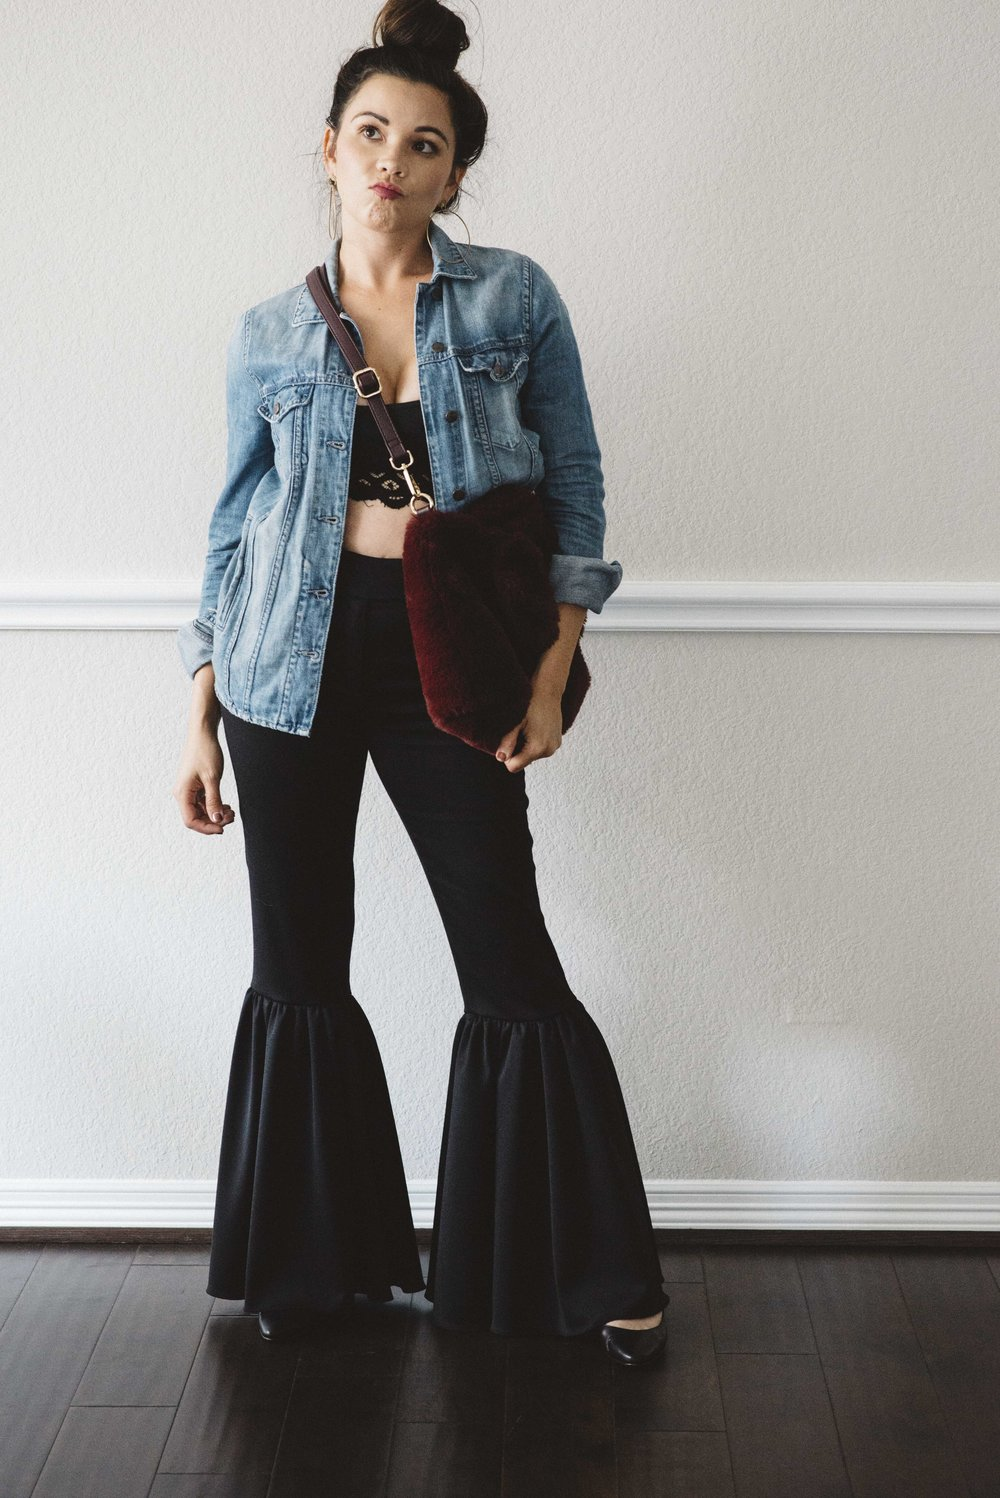 Two Takes on Fancy Flares